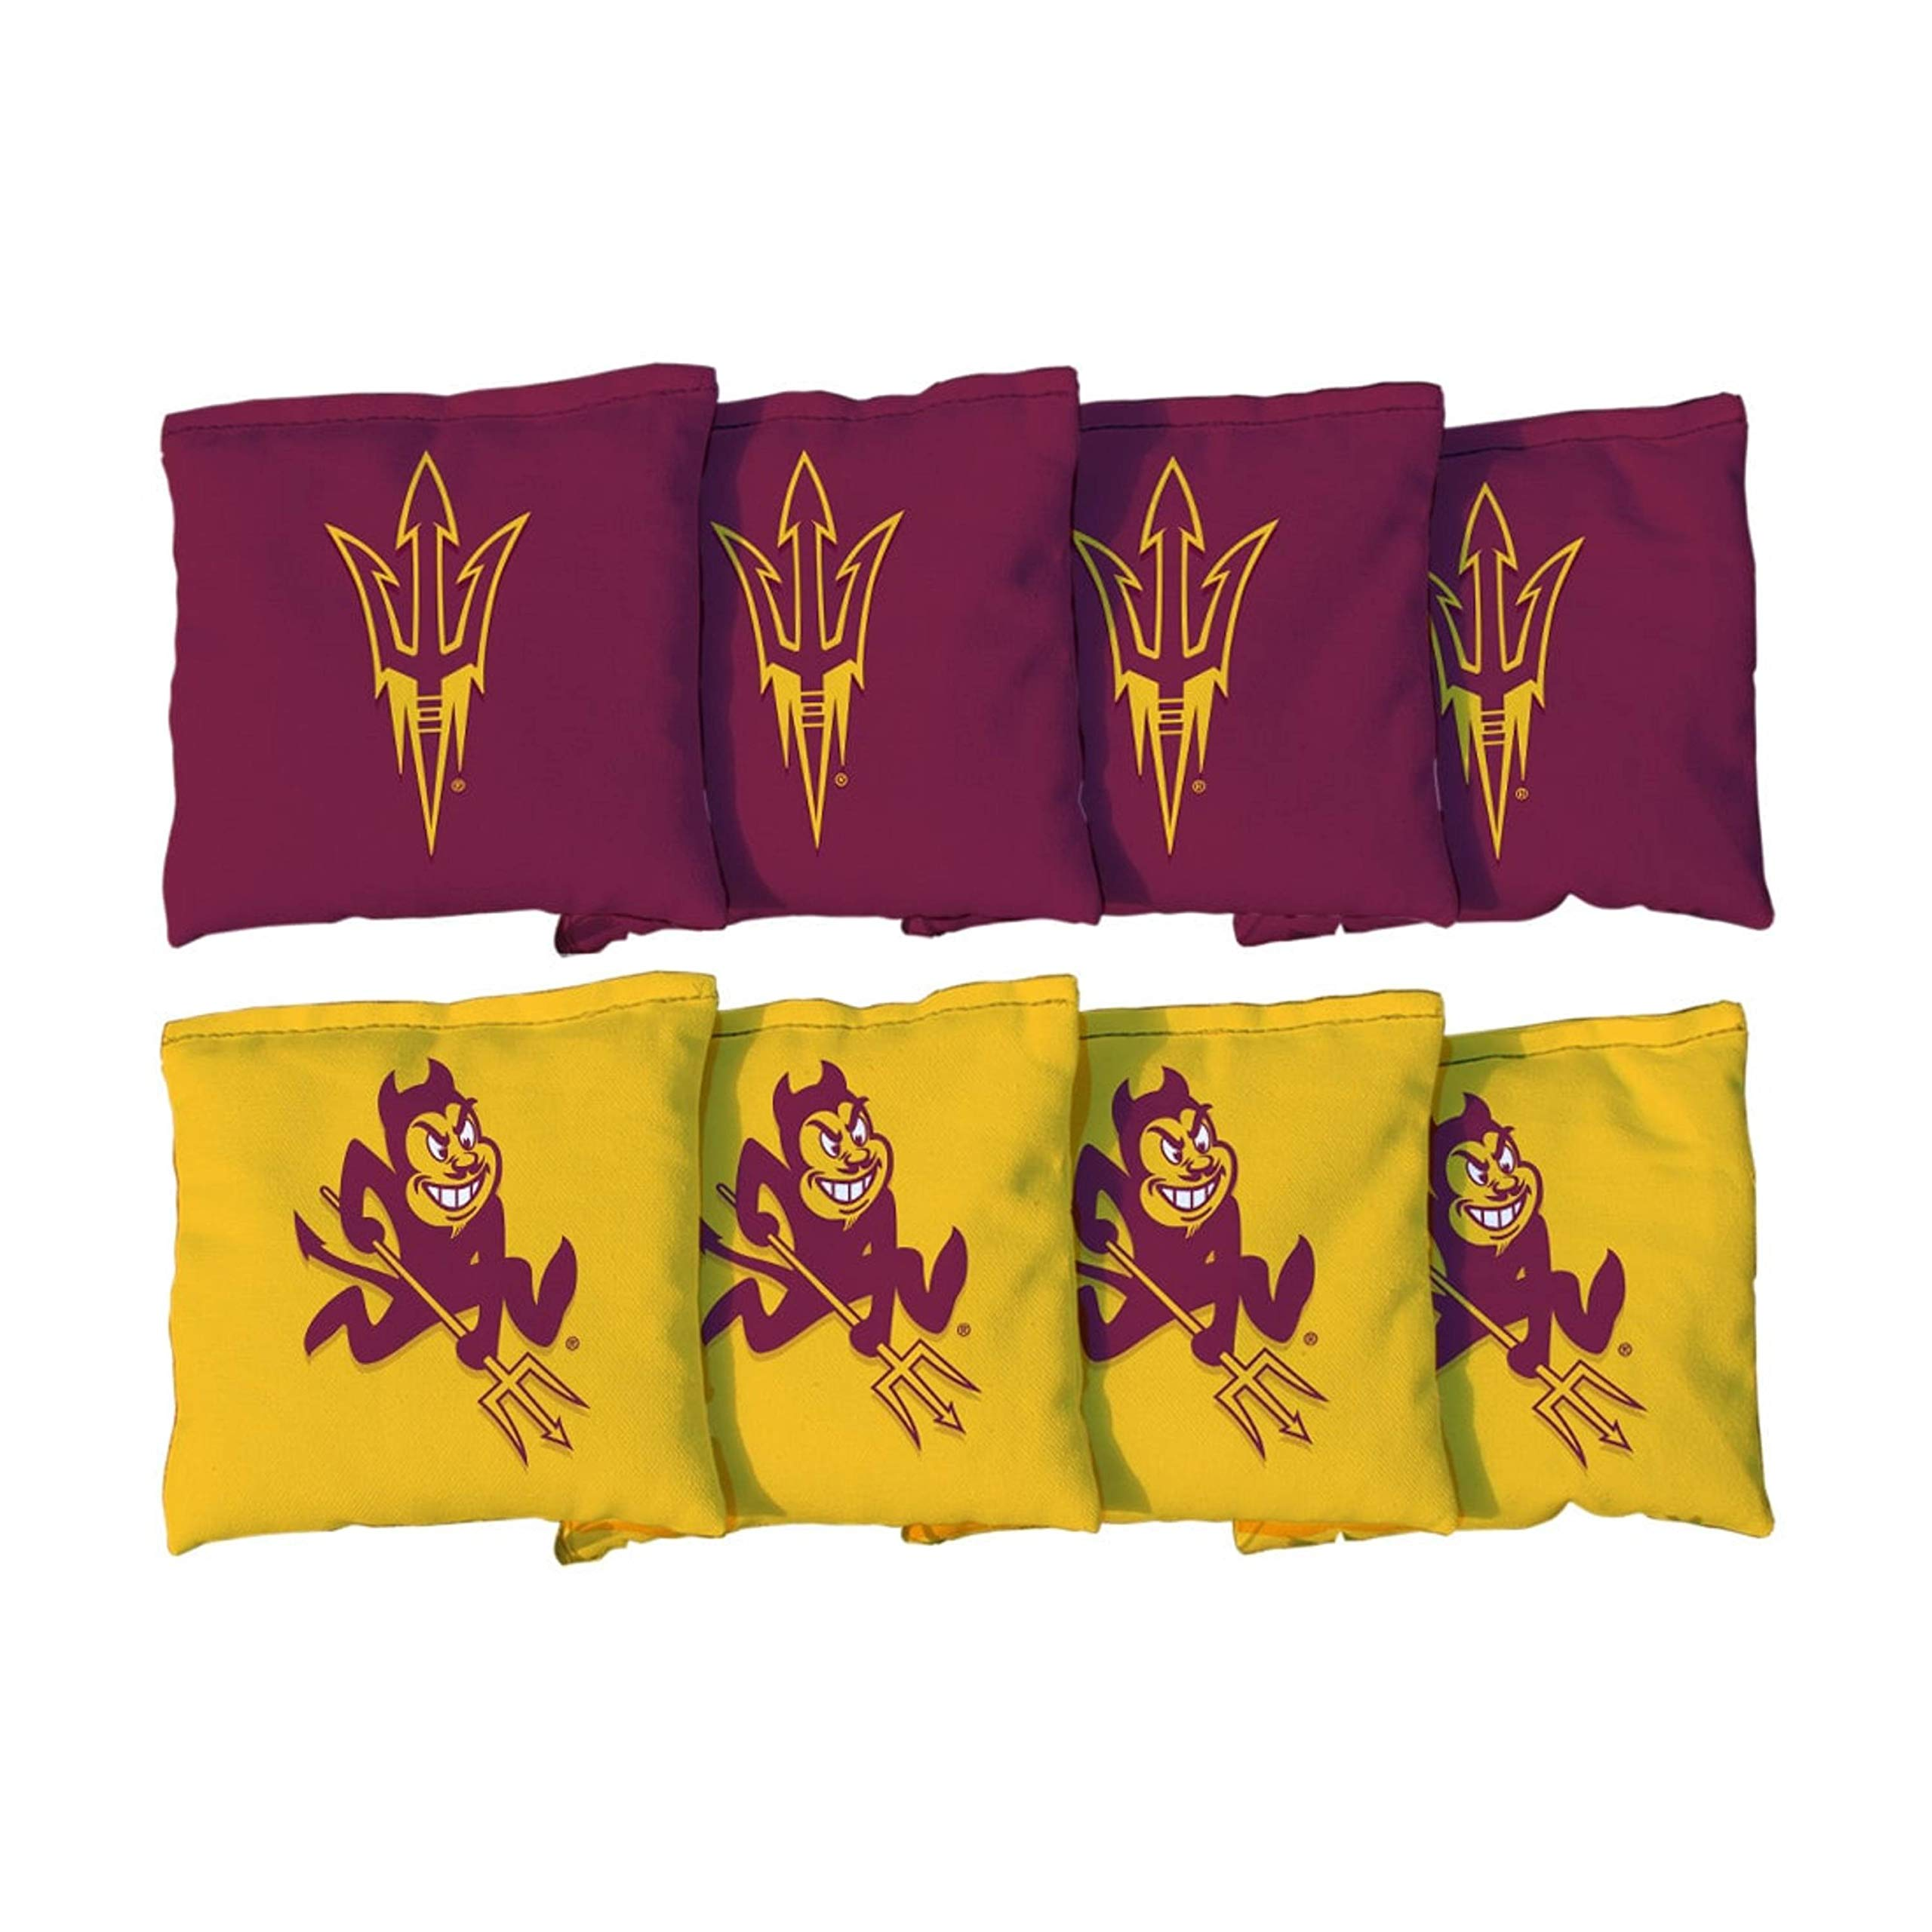 Victory Tailgate NCAA Regulation Cornhole Game Bag Set (8 Bags Included, Corn-Filled) - Arizona State University Sun Devils